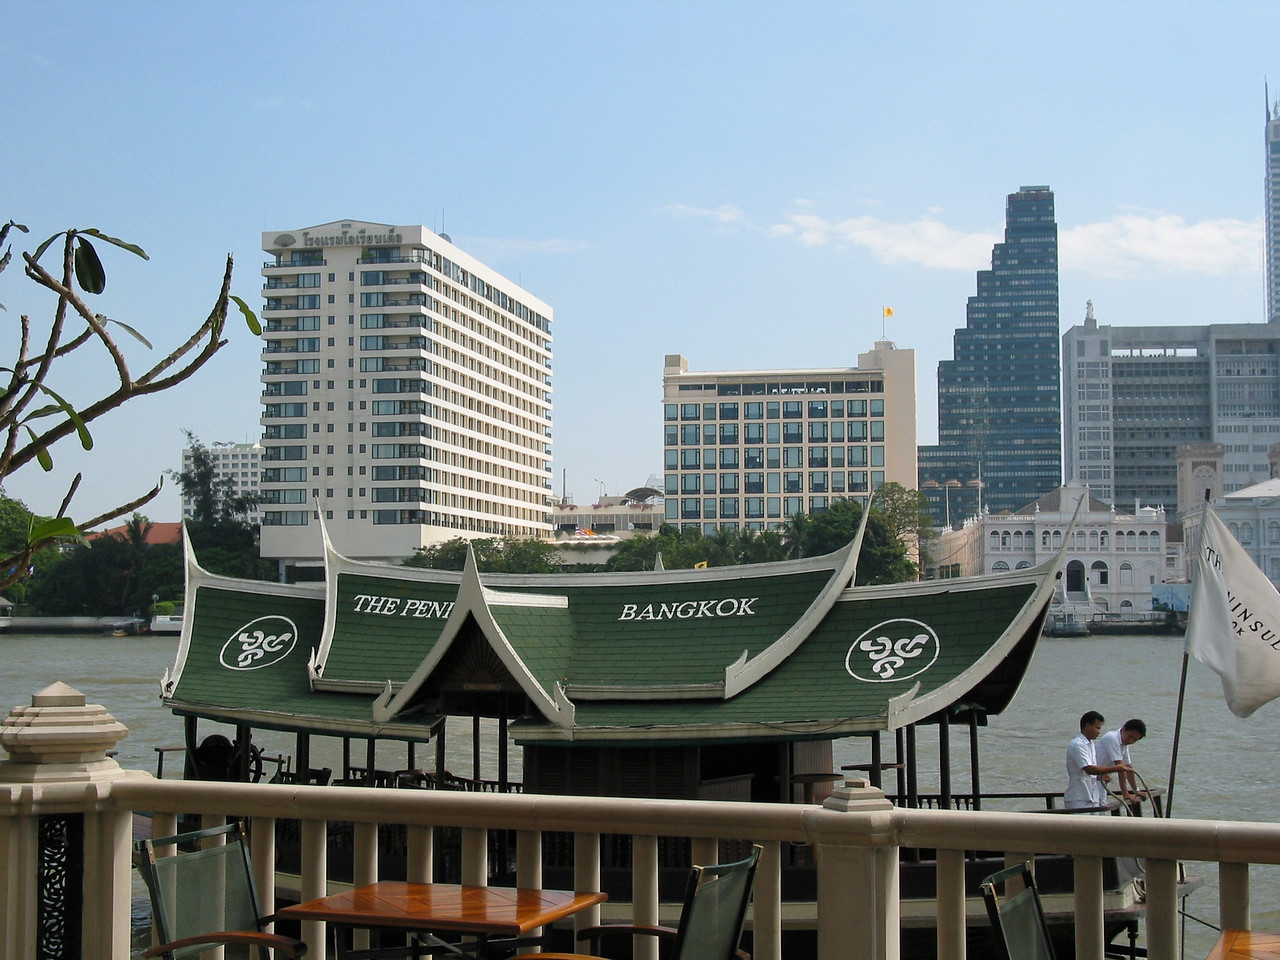 Getting back and forth across the Chao Phraya is easy with the free shuttle boat.